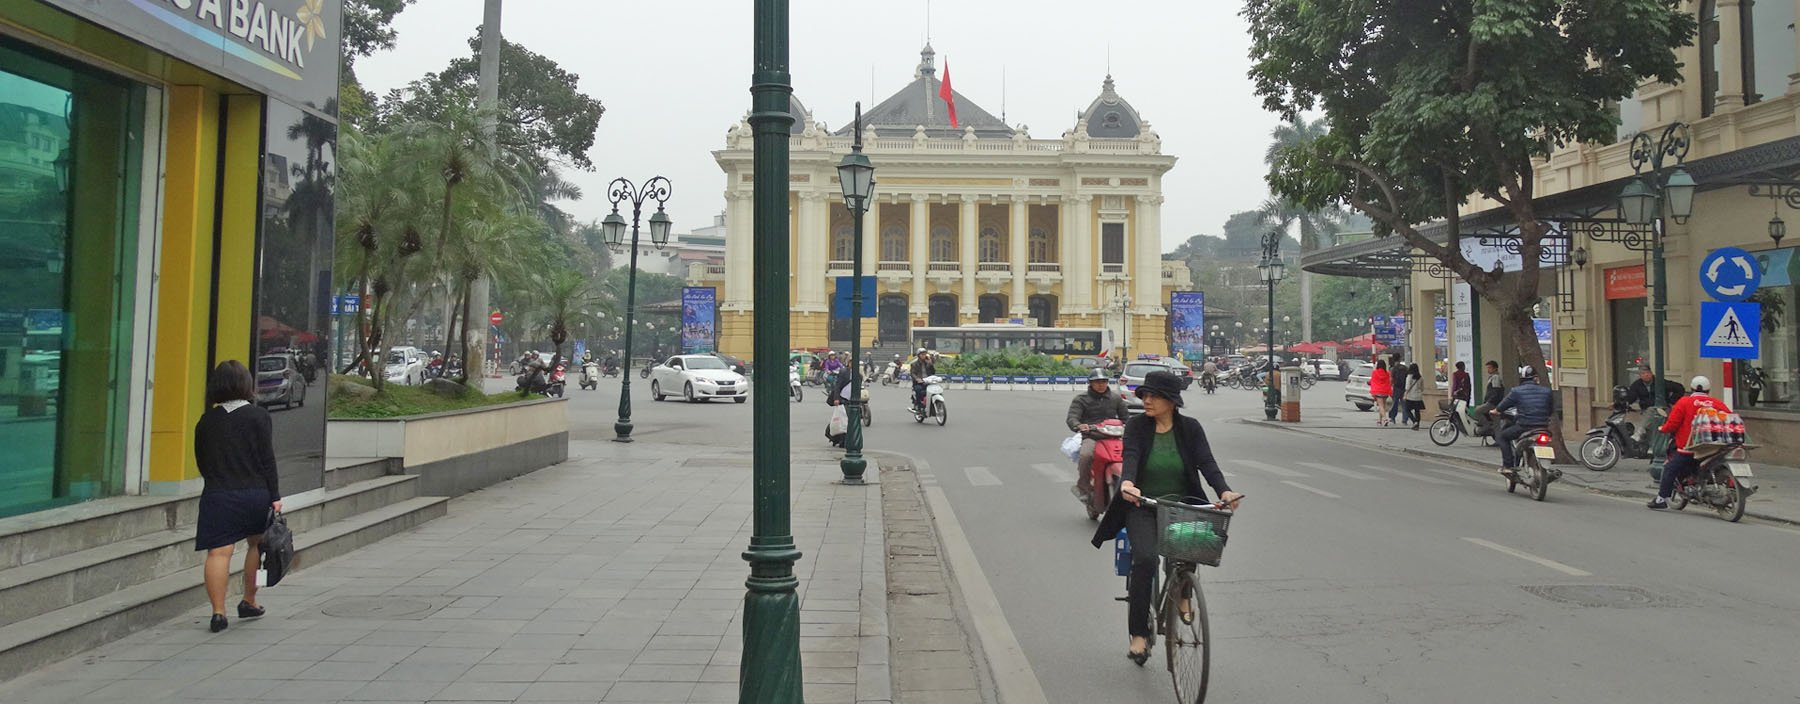 vn, hanoi, french quarter.jpg